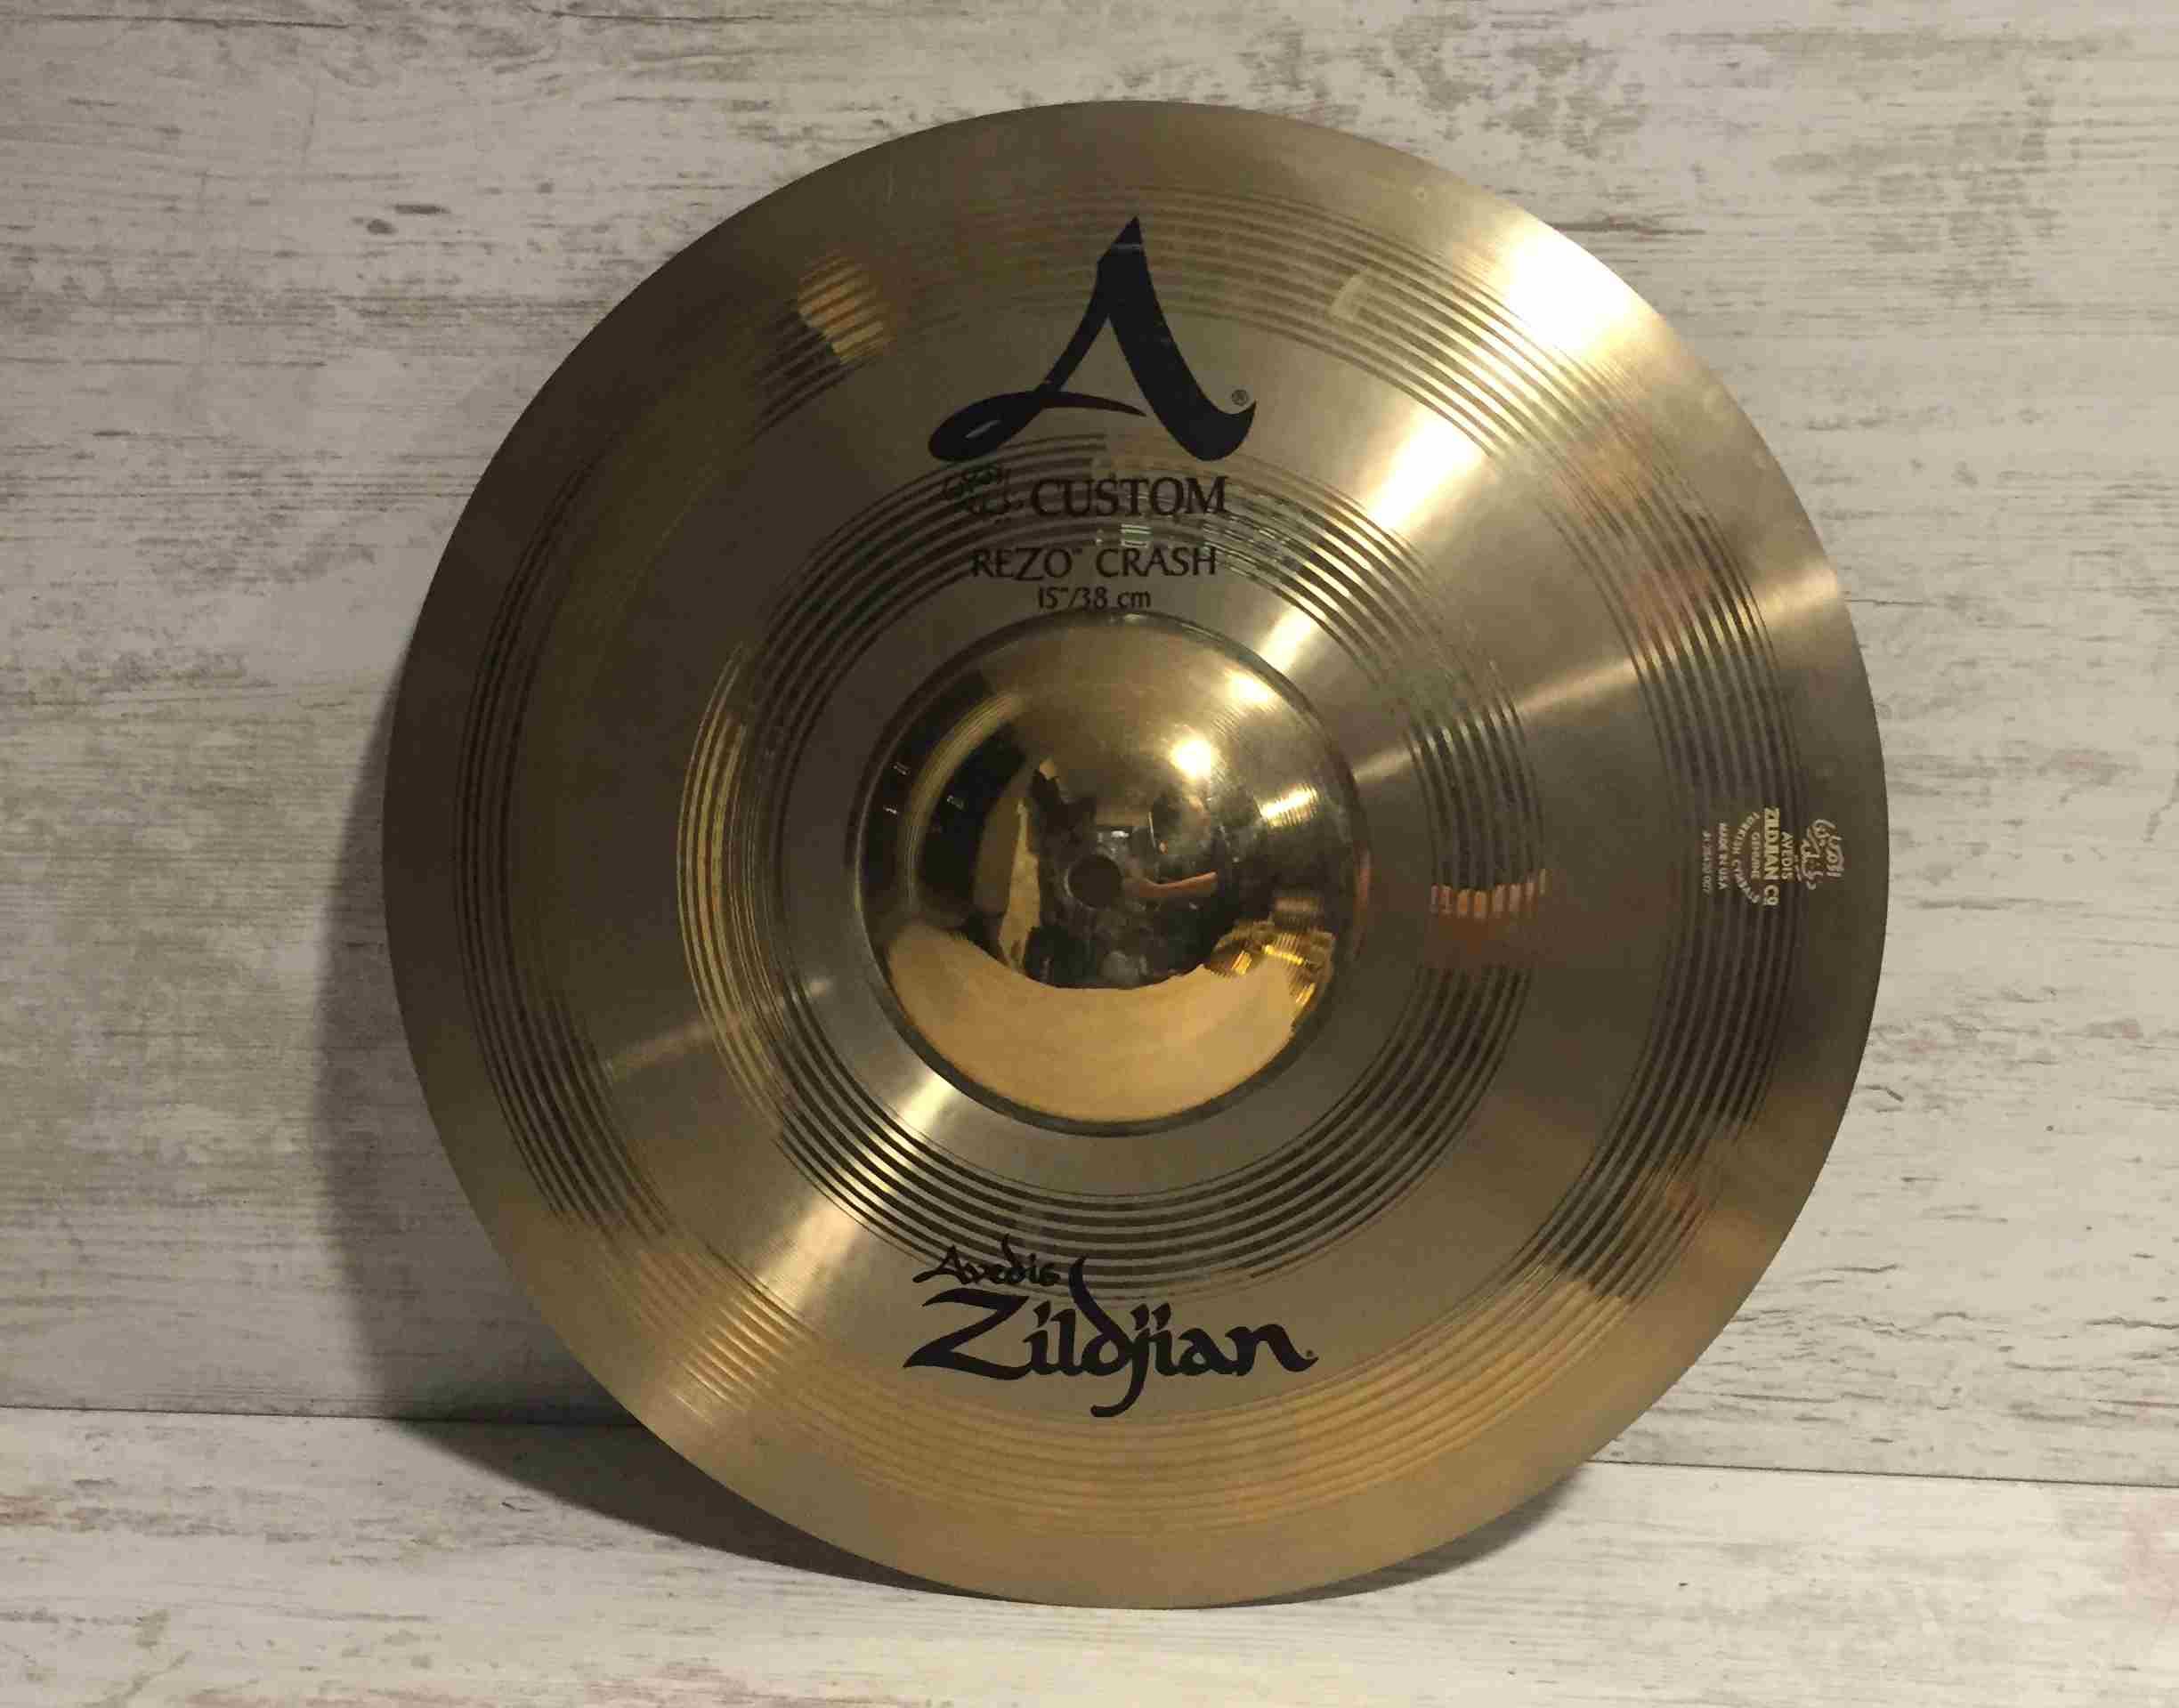 "ZILDJIAN A Custom Rezo Crash 16"" Destockage"